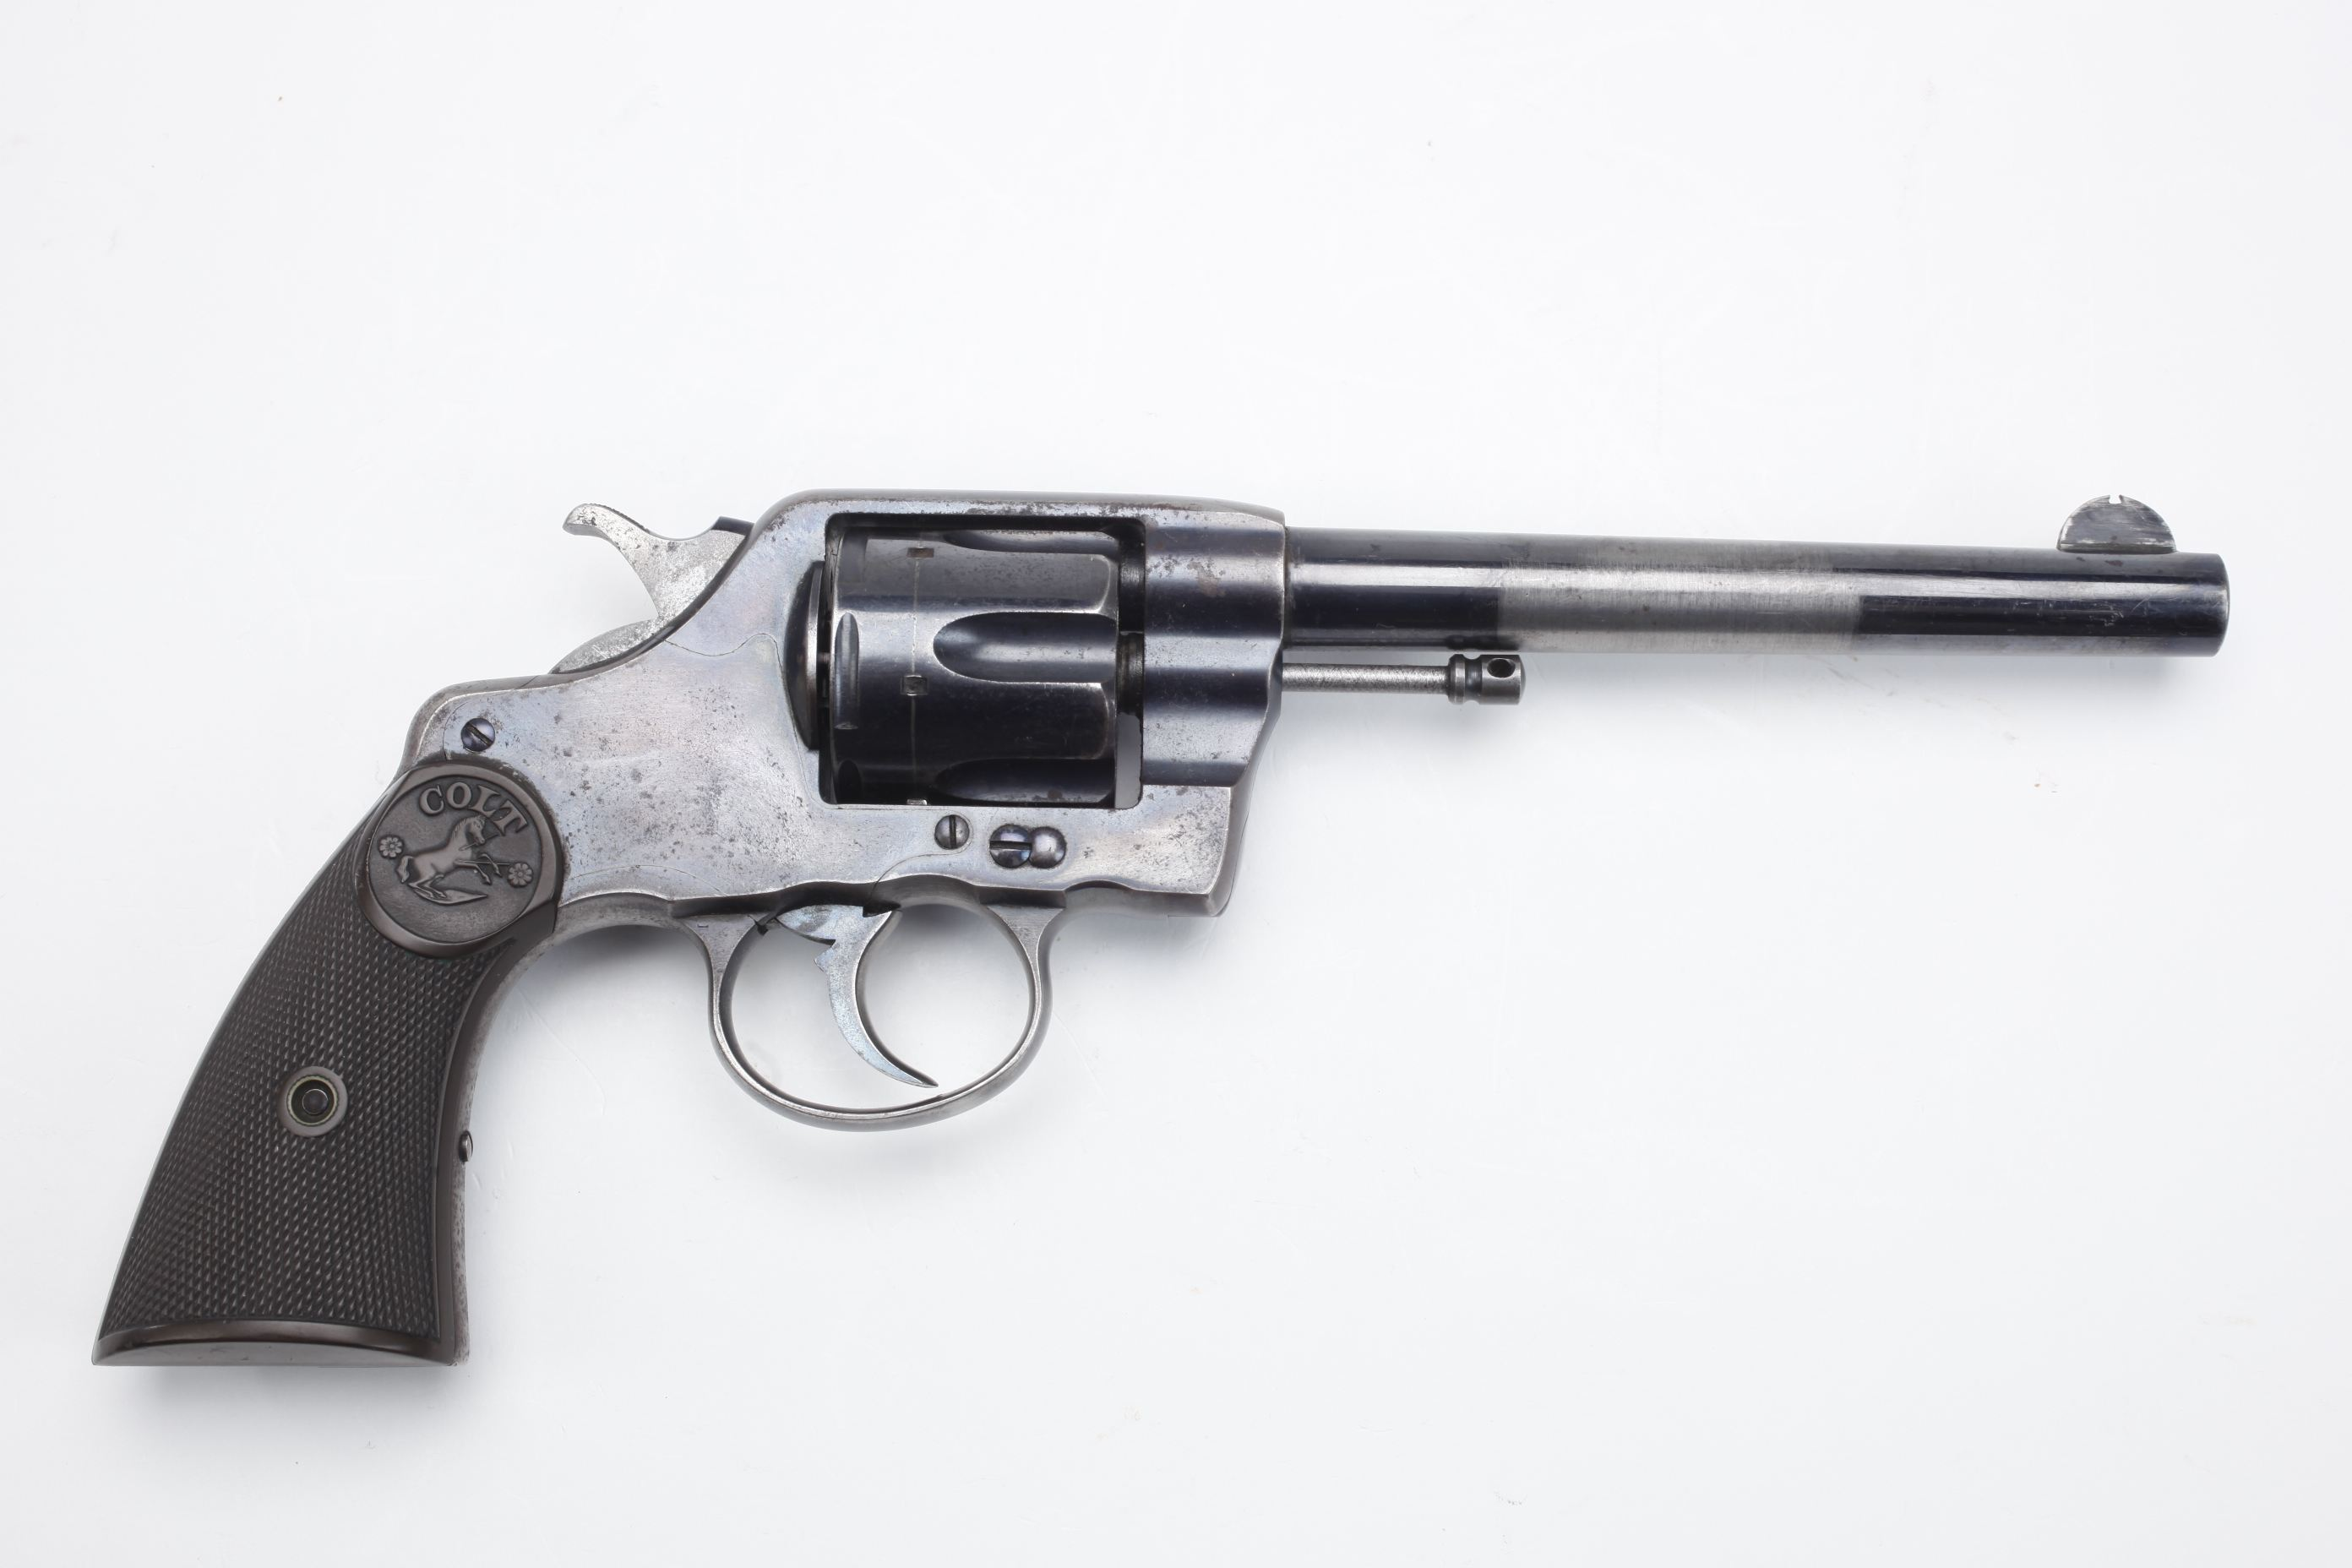 Colt New Army Navy revolver